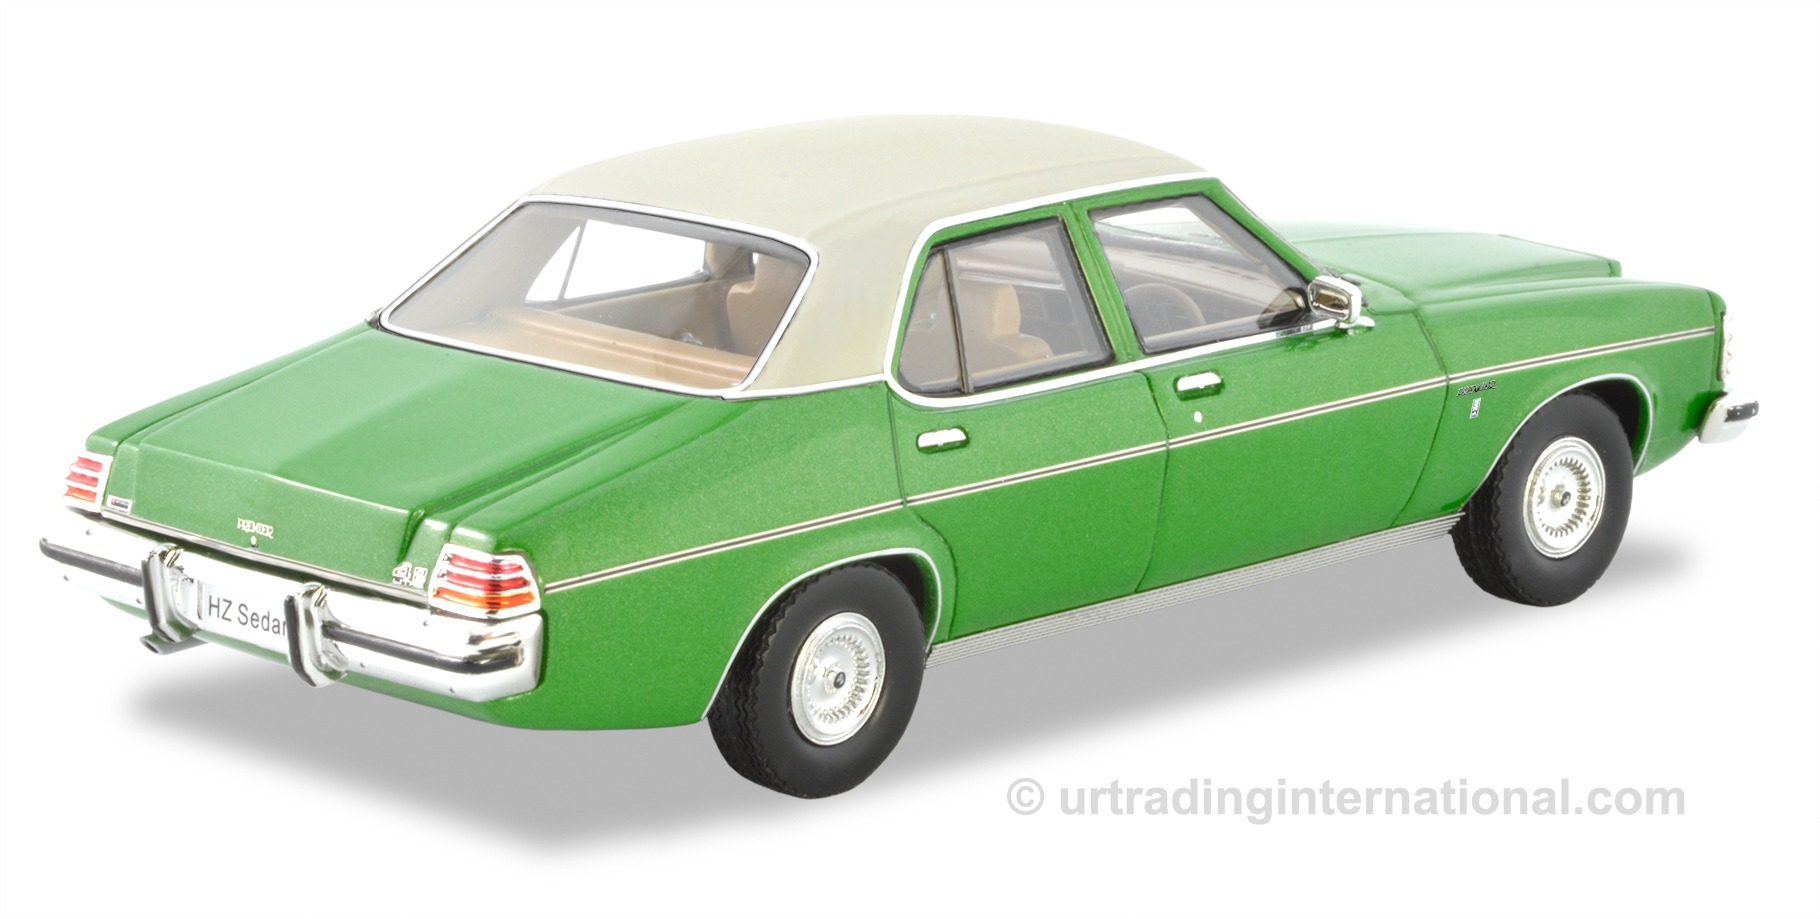 1977 Holden HZ Premier Sedan – Super Mint (Green)